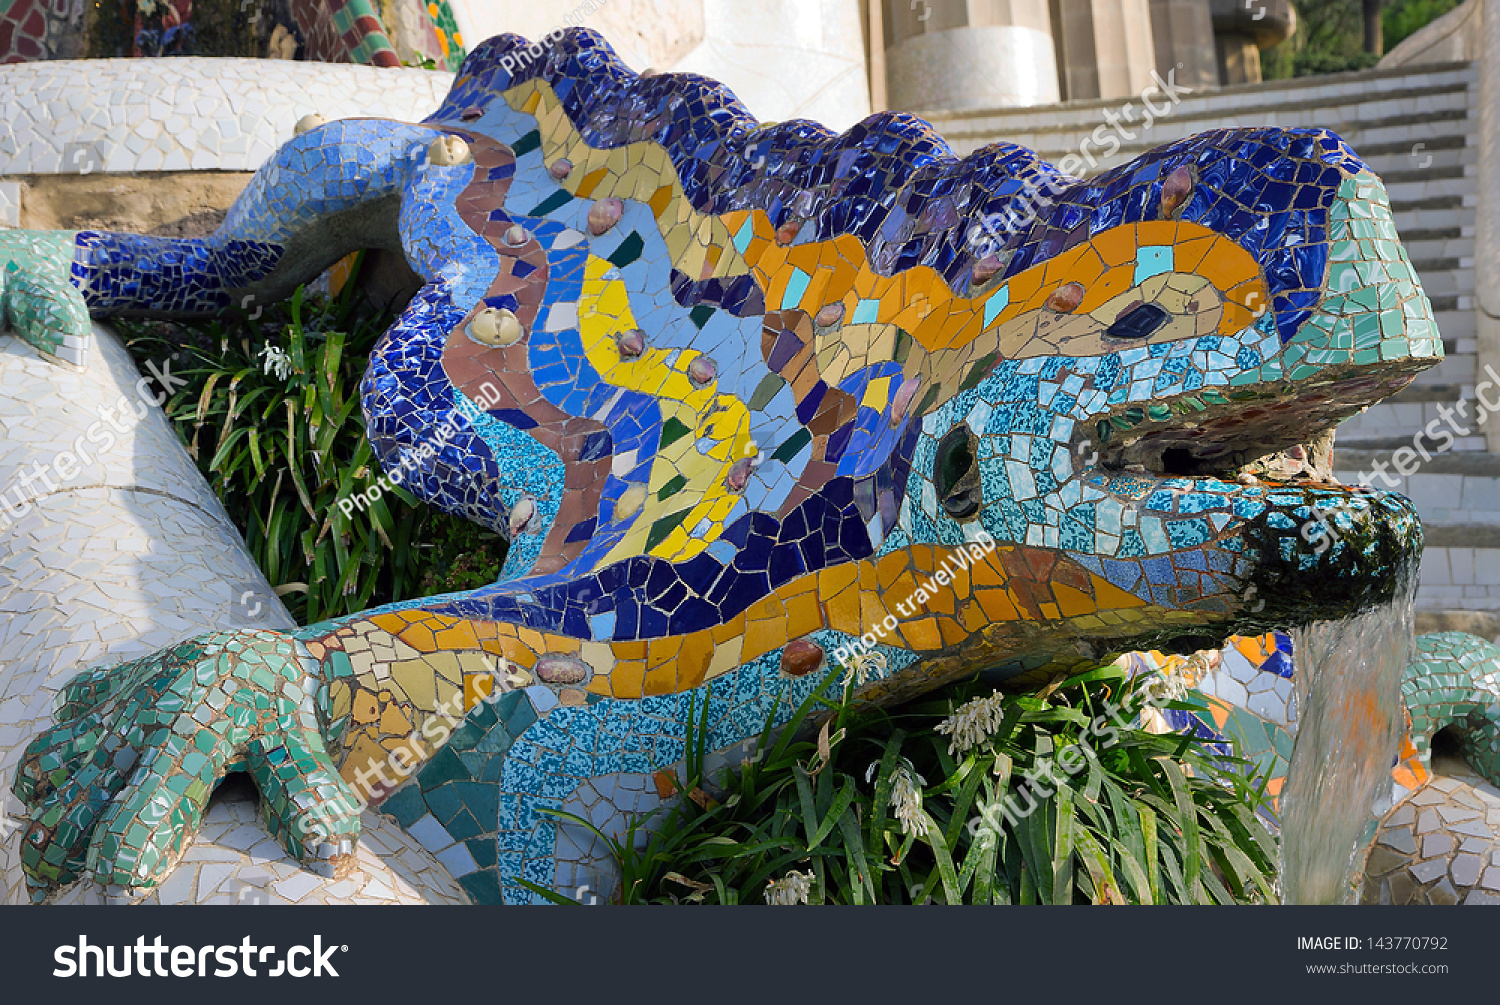 Fountain mosaic salamander in the park guell in barcelona for Salamandra barcelona